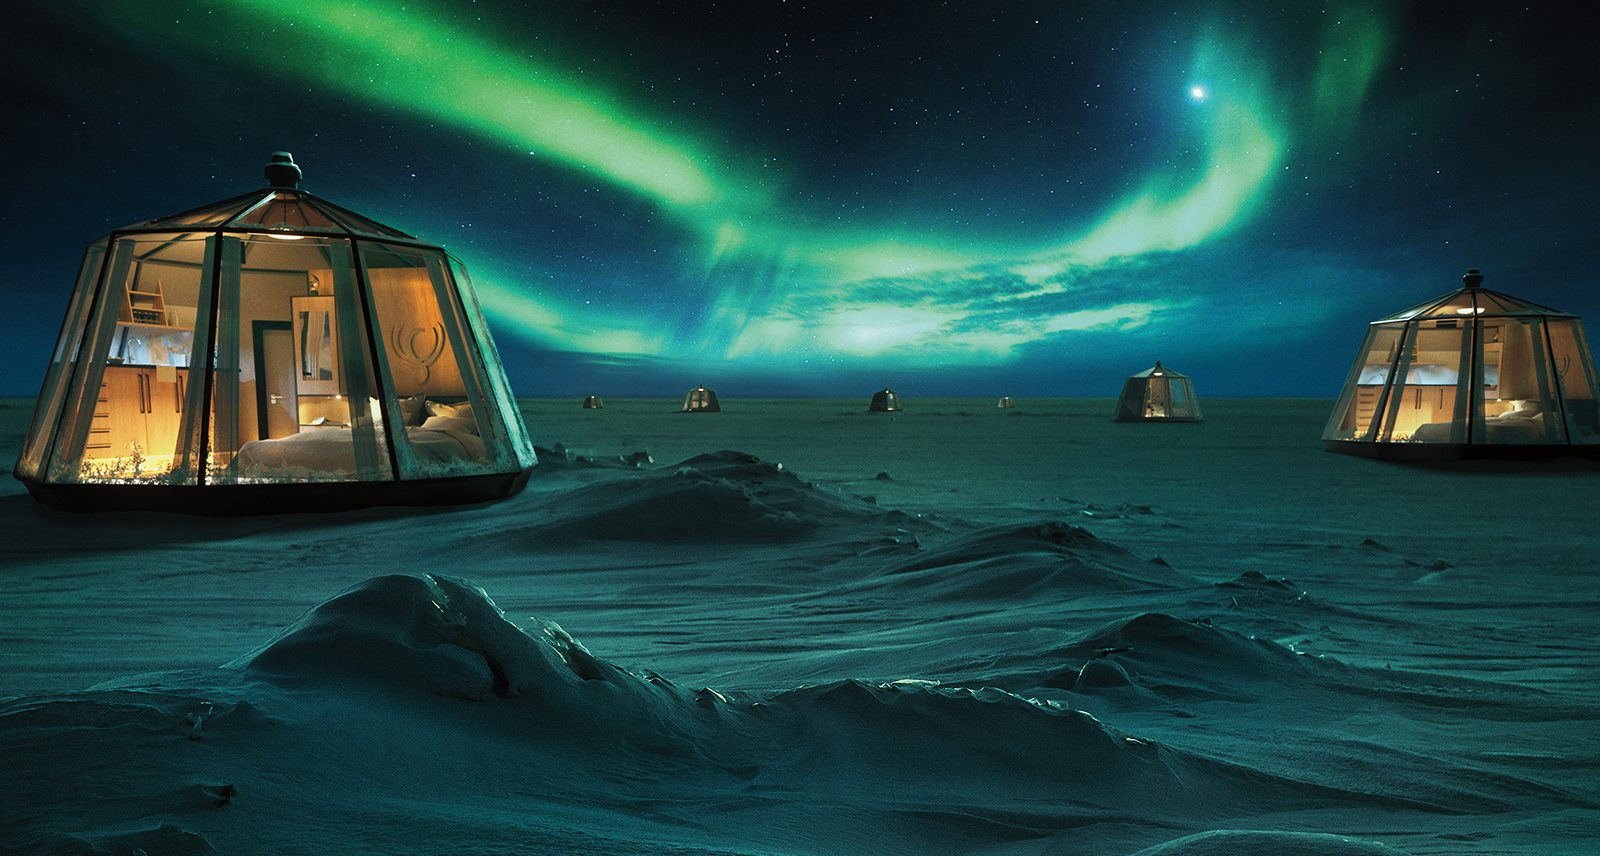 This Nordic Luxury Adventure Gives You Front-Row Seats to the Northern Lights